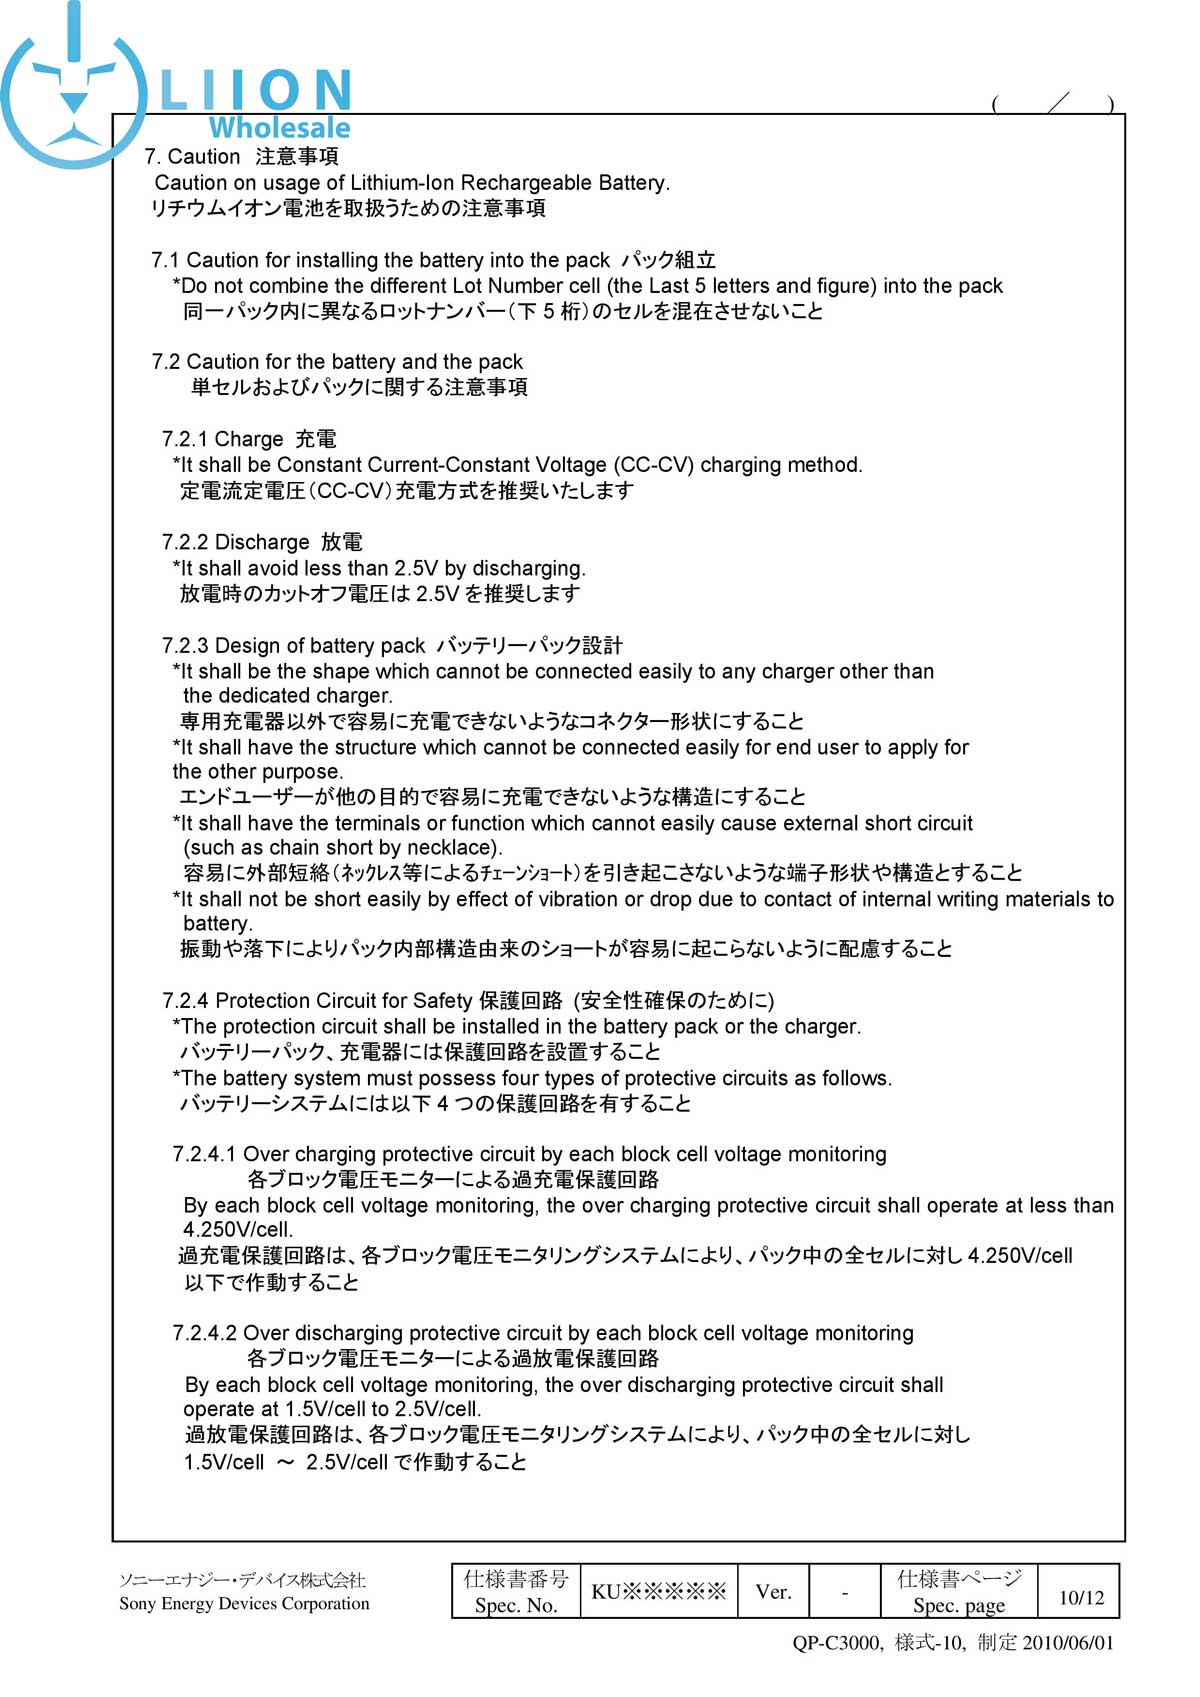 vtc5 specs page 10